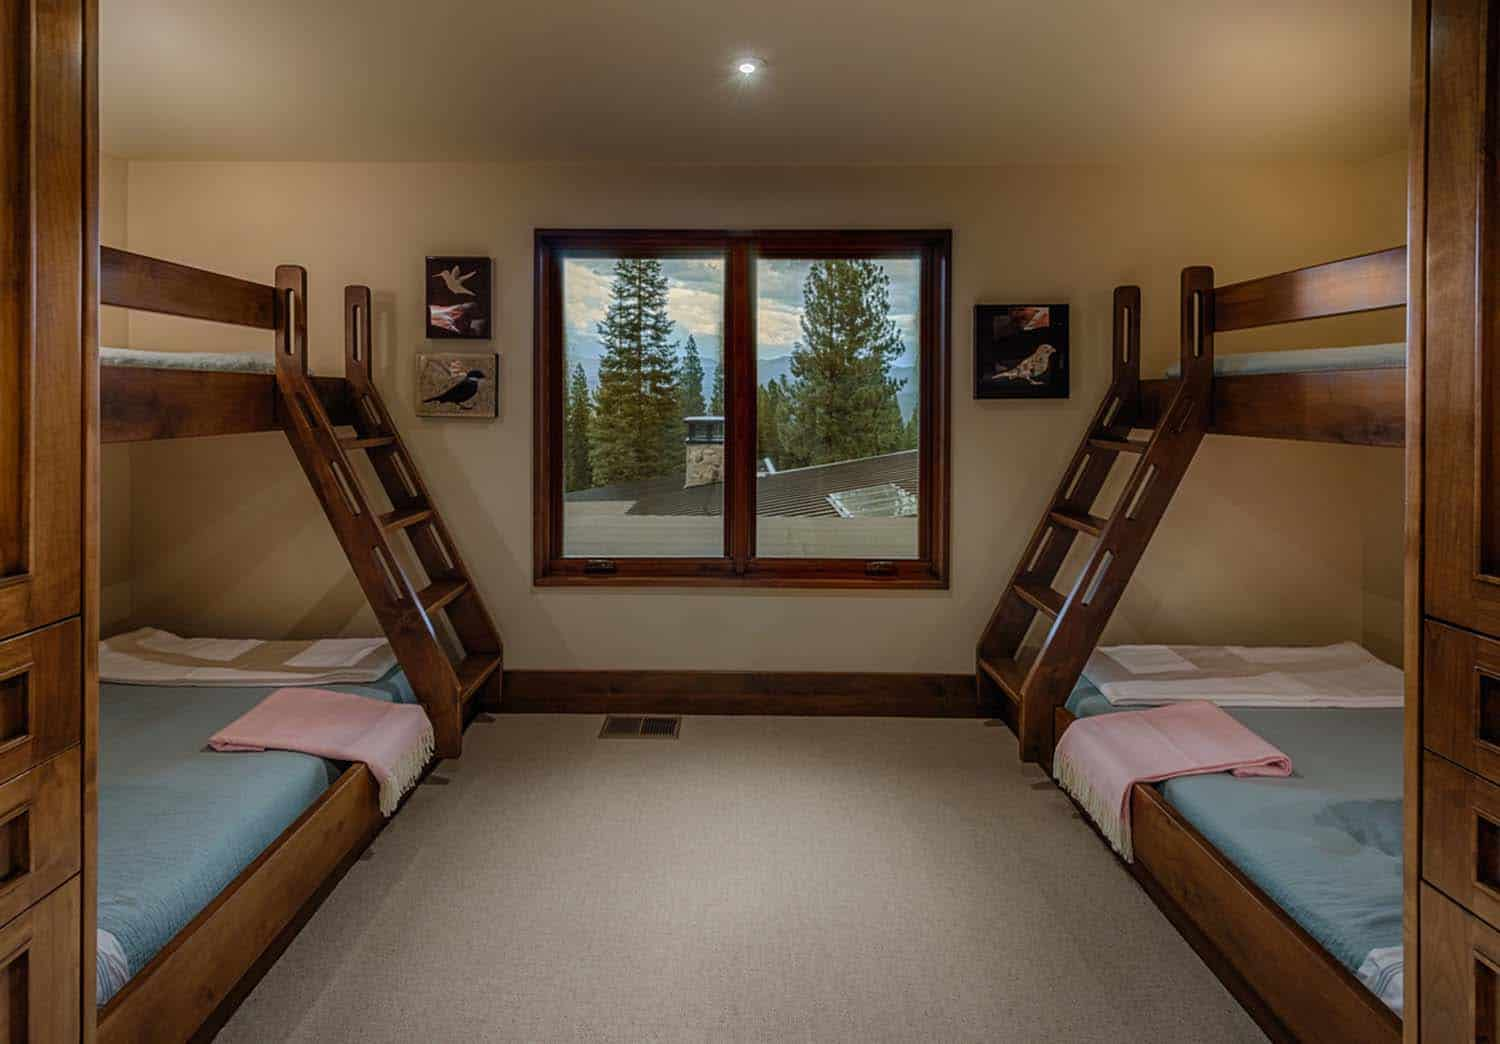 transitional-style-mountain-home-kids-bunk-bedroom